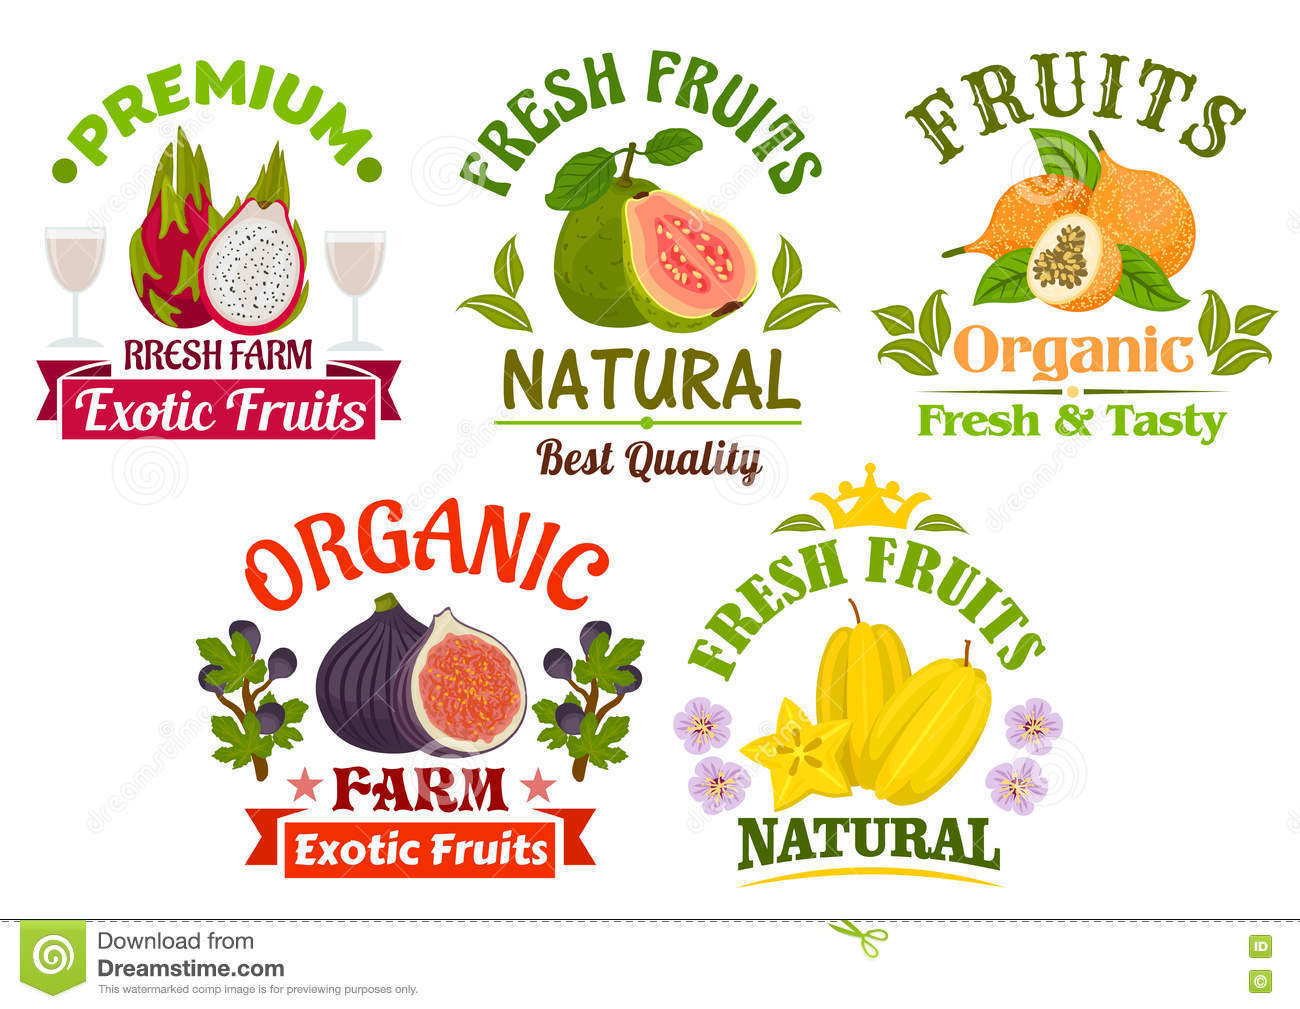 Fresh Juicy Natural Organic Fruits Icons Set Stock Vector. Assisted Living Signs Of Stroke. Immigration Signs Of Stroke. Teeth Signs. Cartoon Signs Of Stroke. Sign In French Signs. Relearn Guitar Signs Of Stroke. Geometric Signs. Holiday Closed Signs